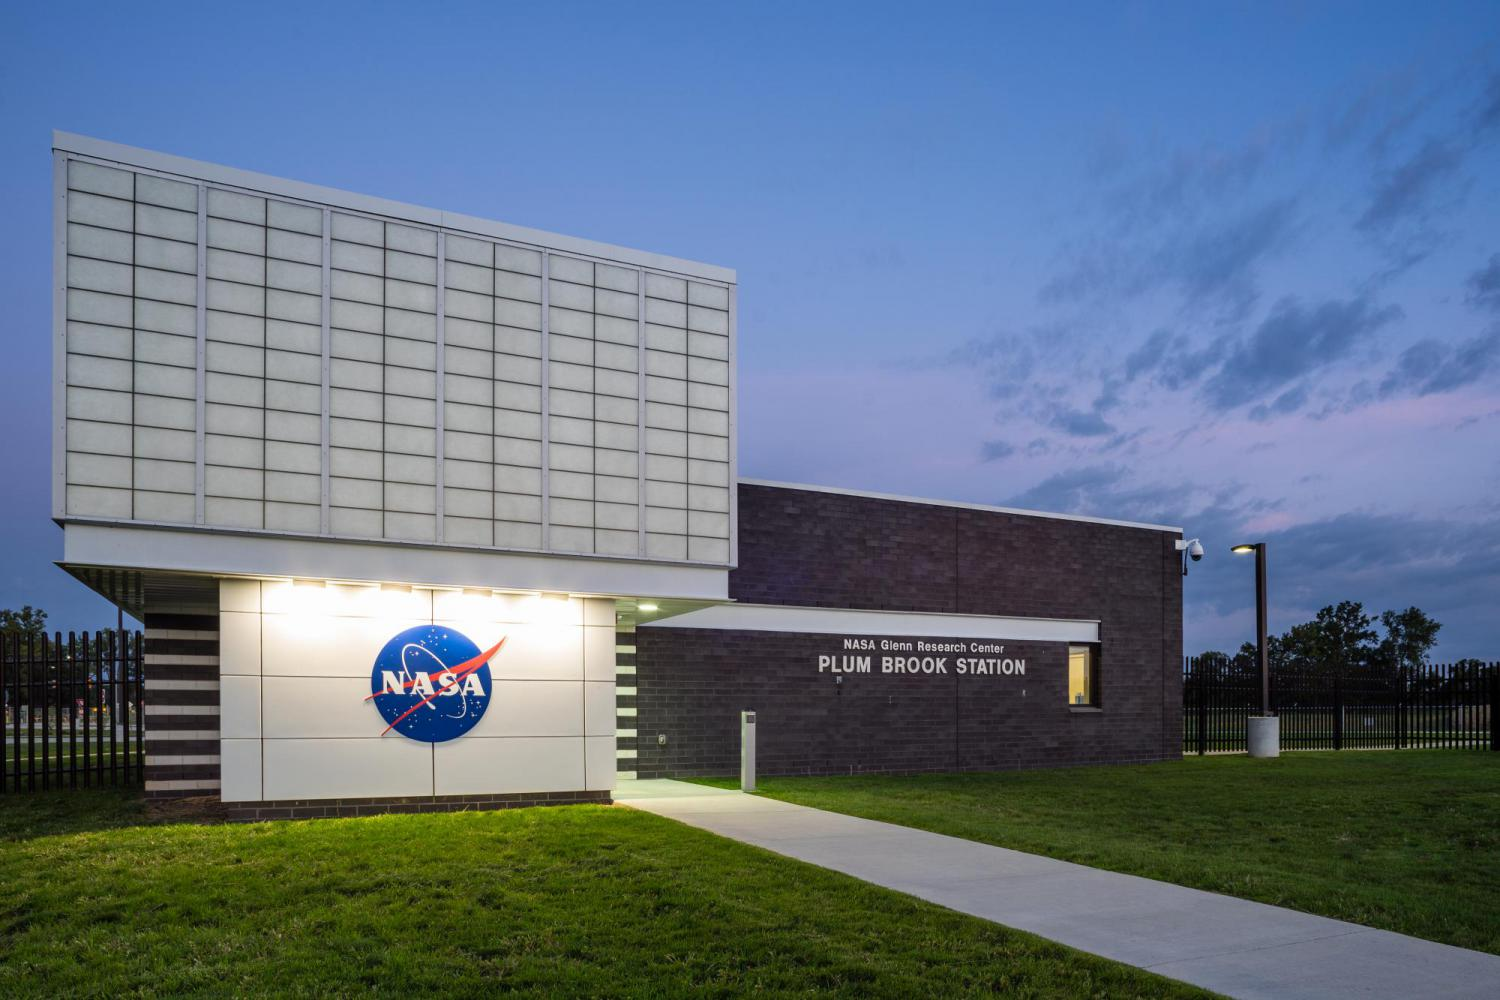 NASA Plum Brook Station